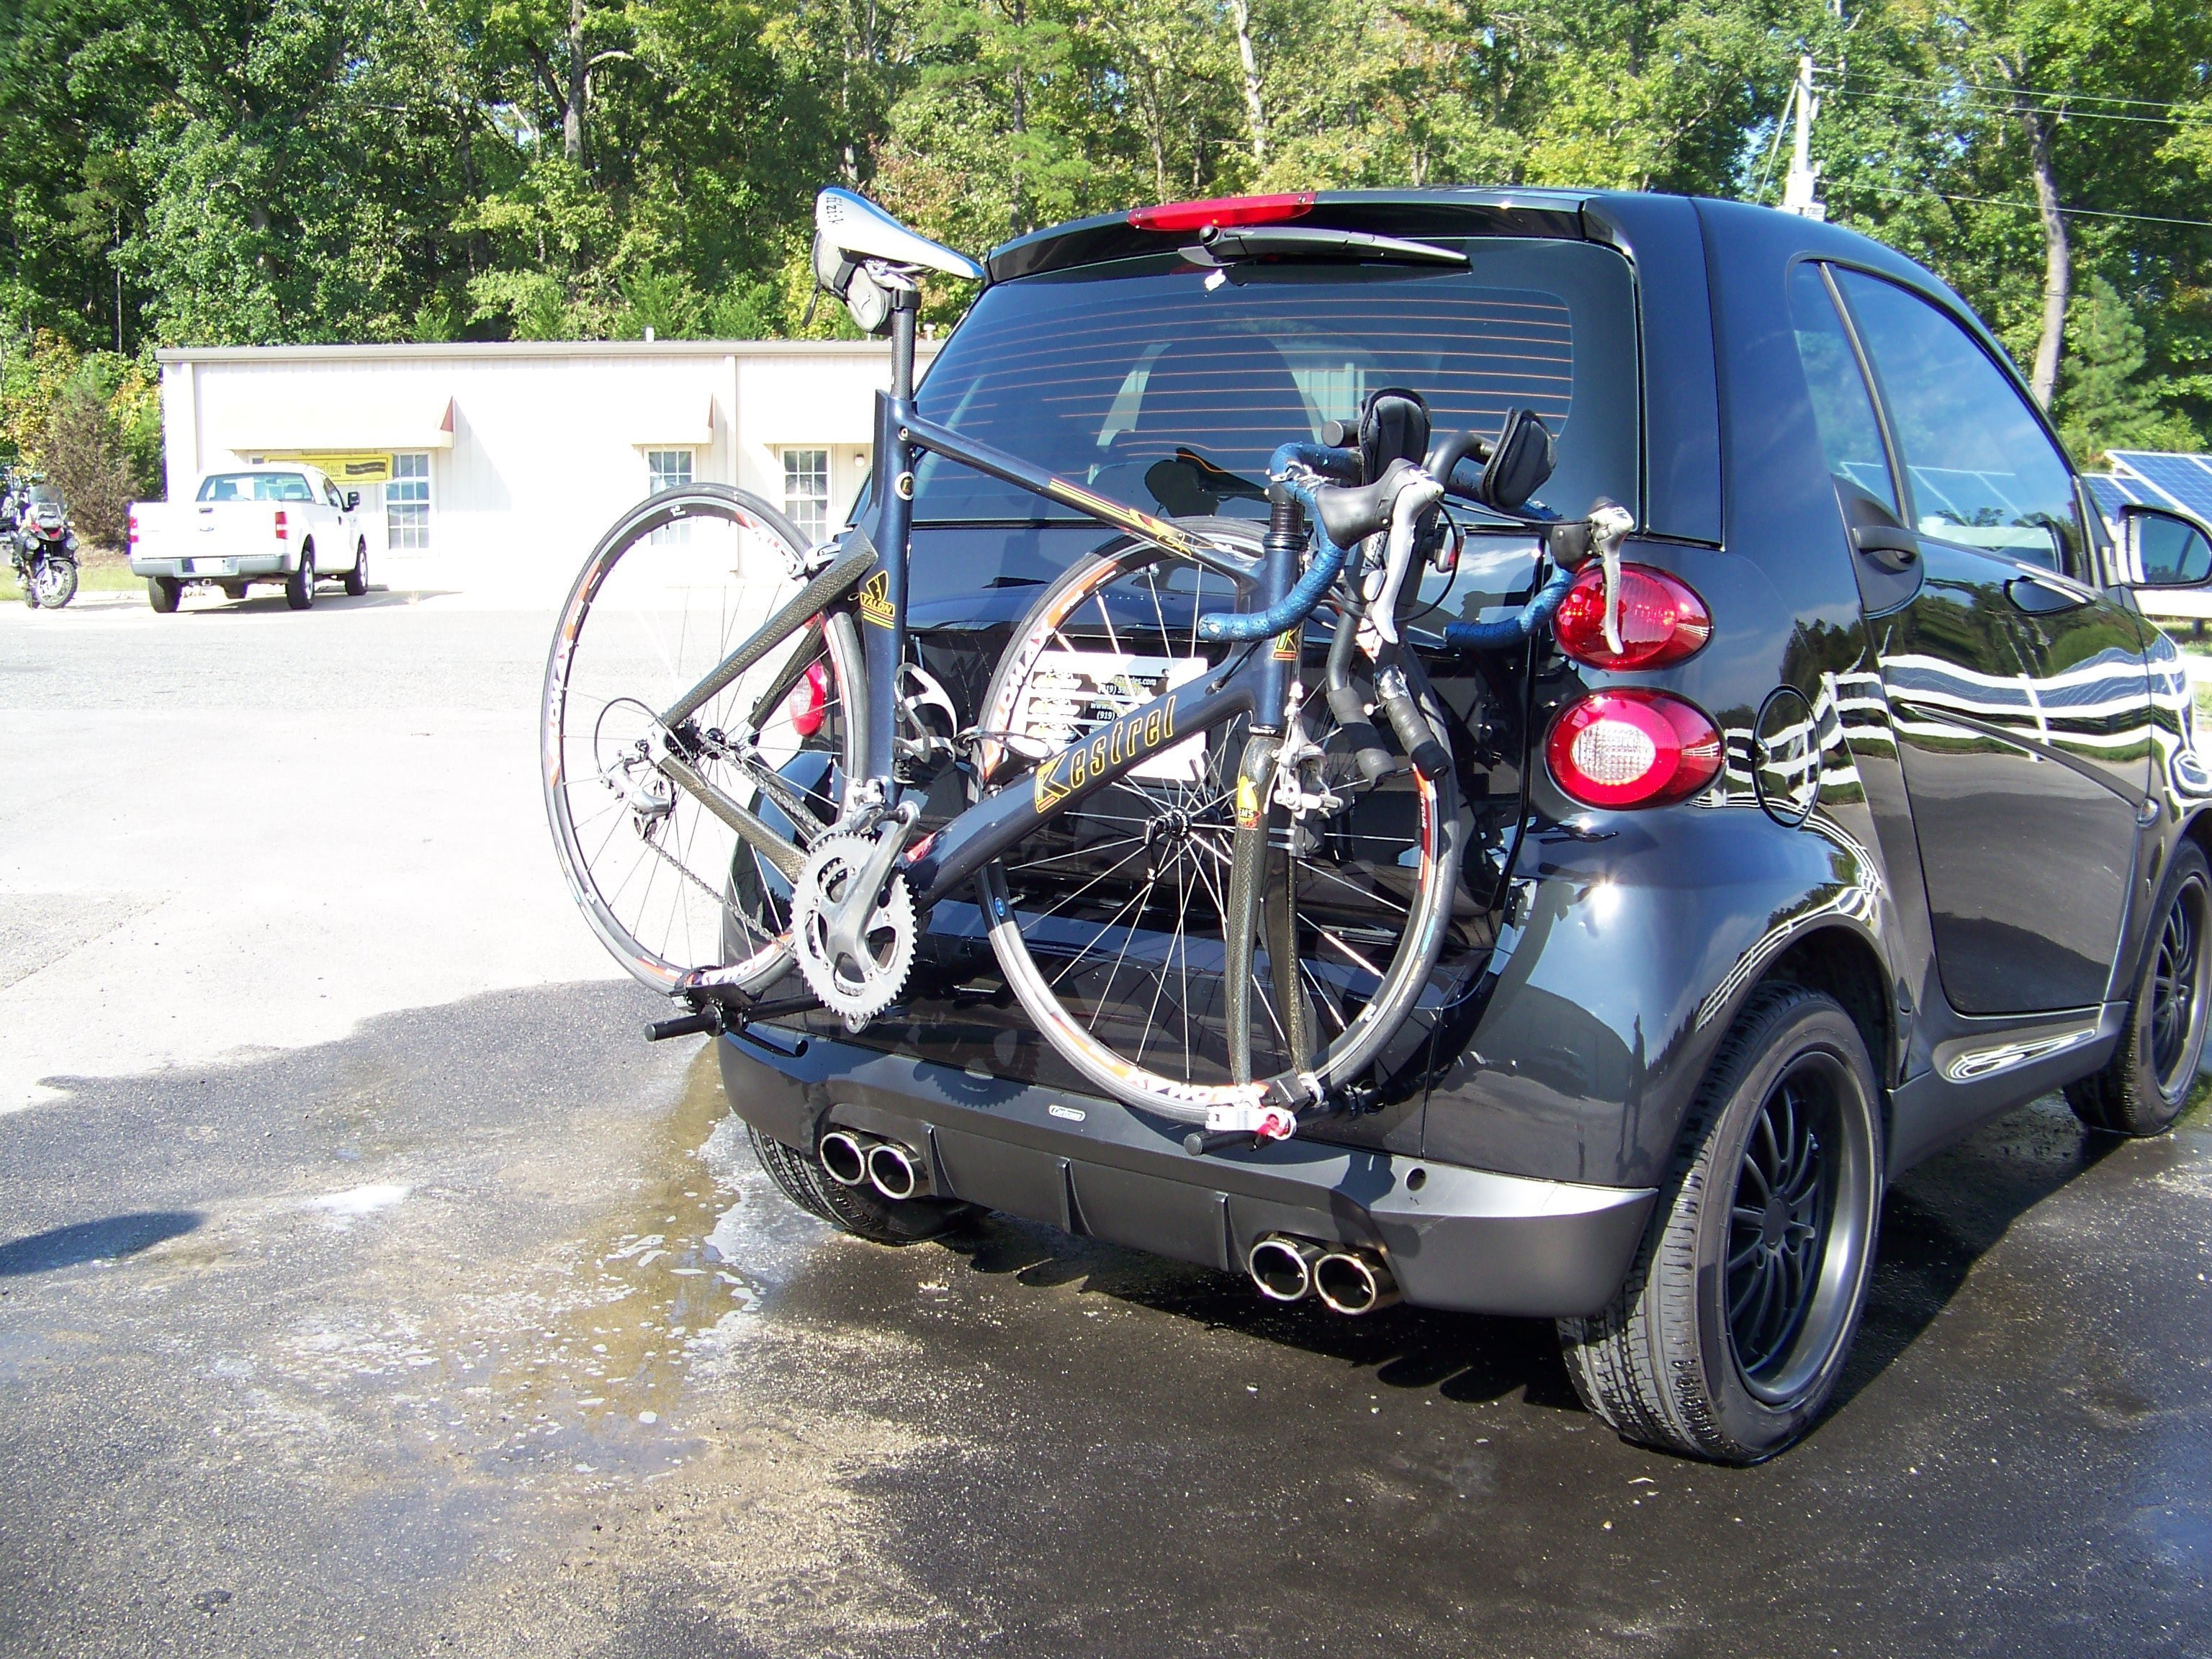 Bike Rack For Car The Smart Car Bicycle Rack